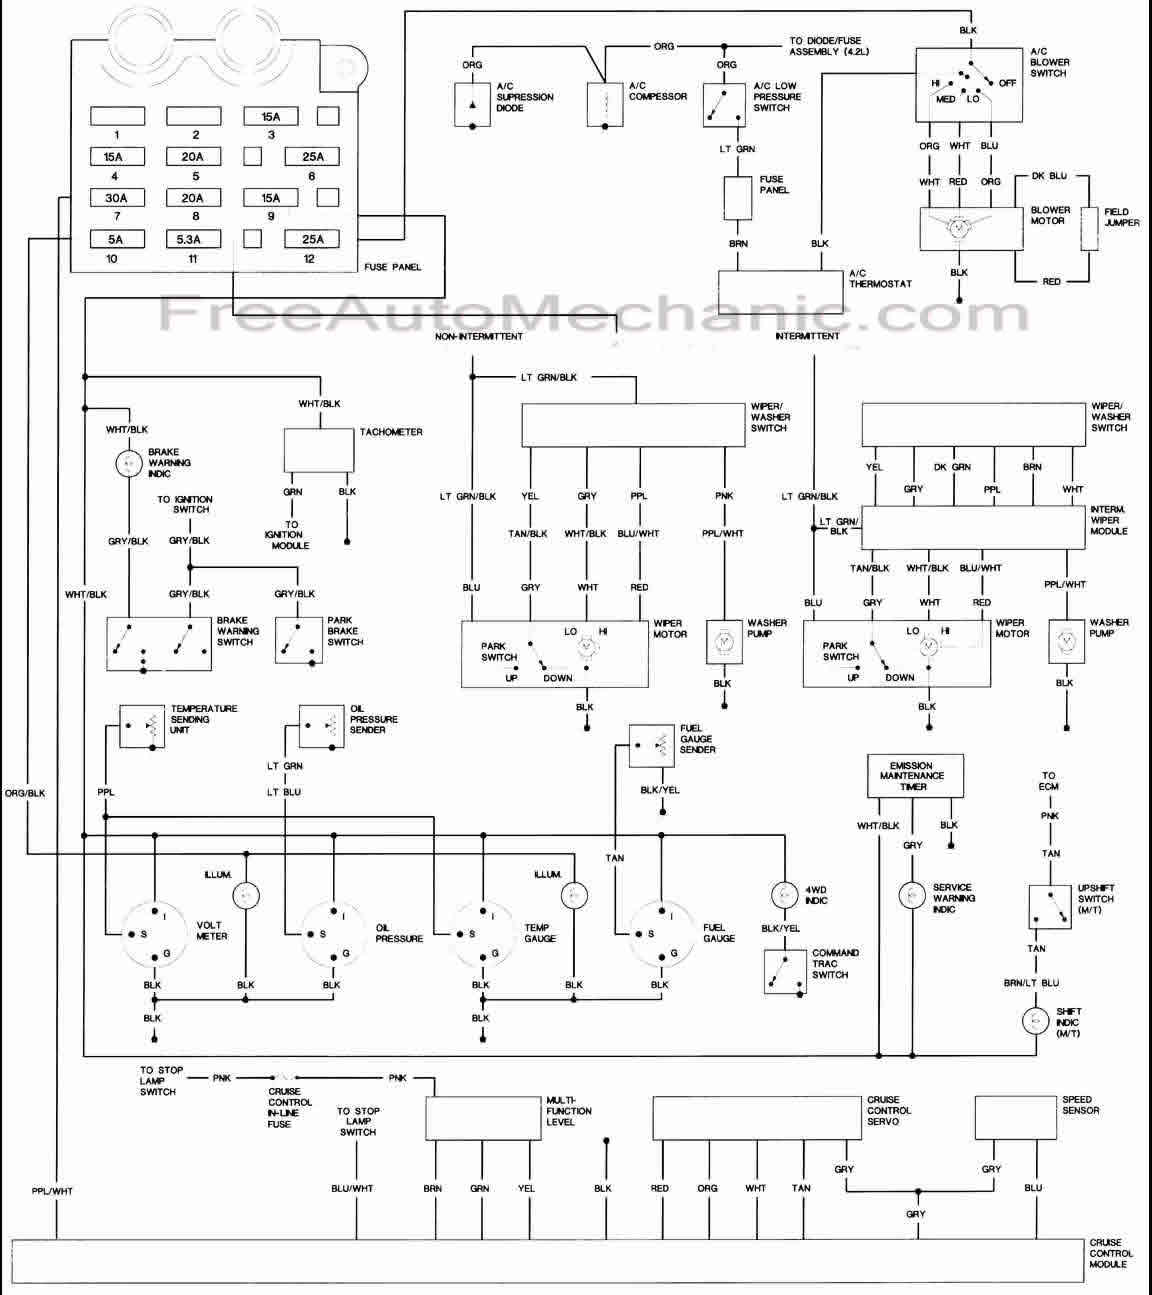 1987 jeep wrangler body 1 freeautomechanic on 1993 Jeep Grand Cherokee Wiring Diagram for 1987 jeep wrangler body 1 at 1987 jeep wrangler radio wiring diagram